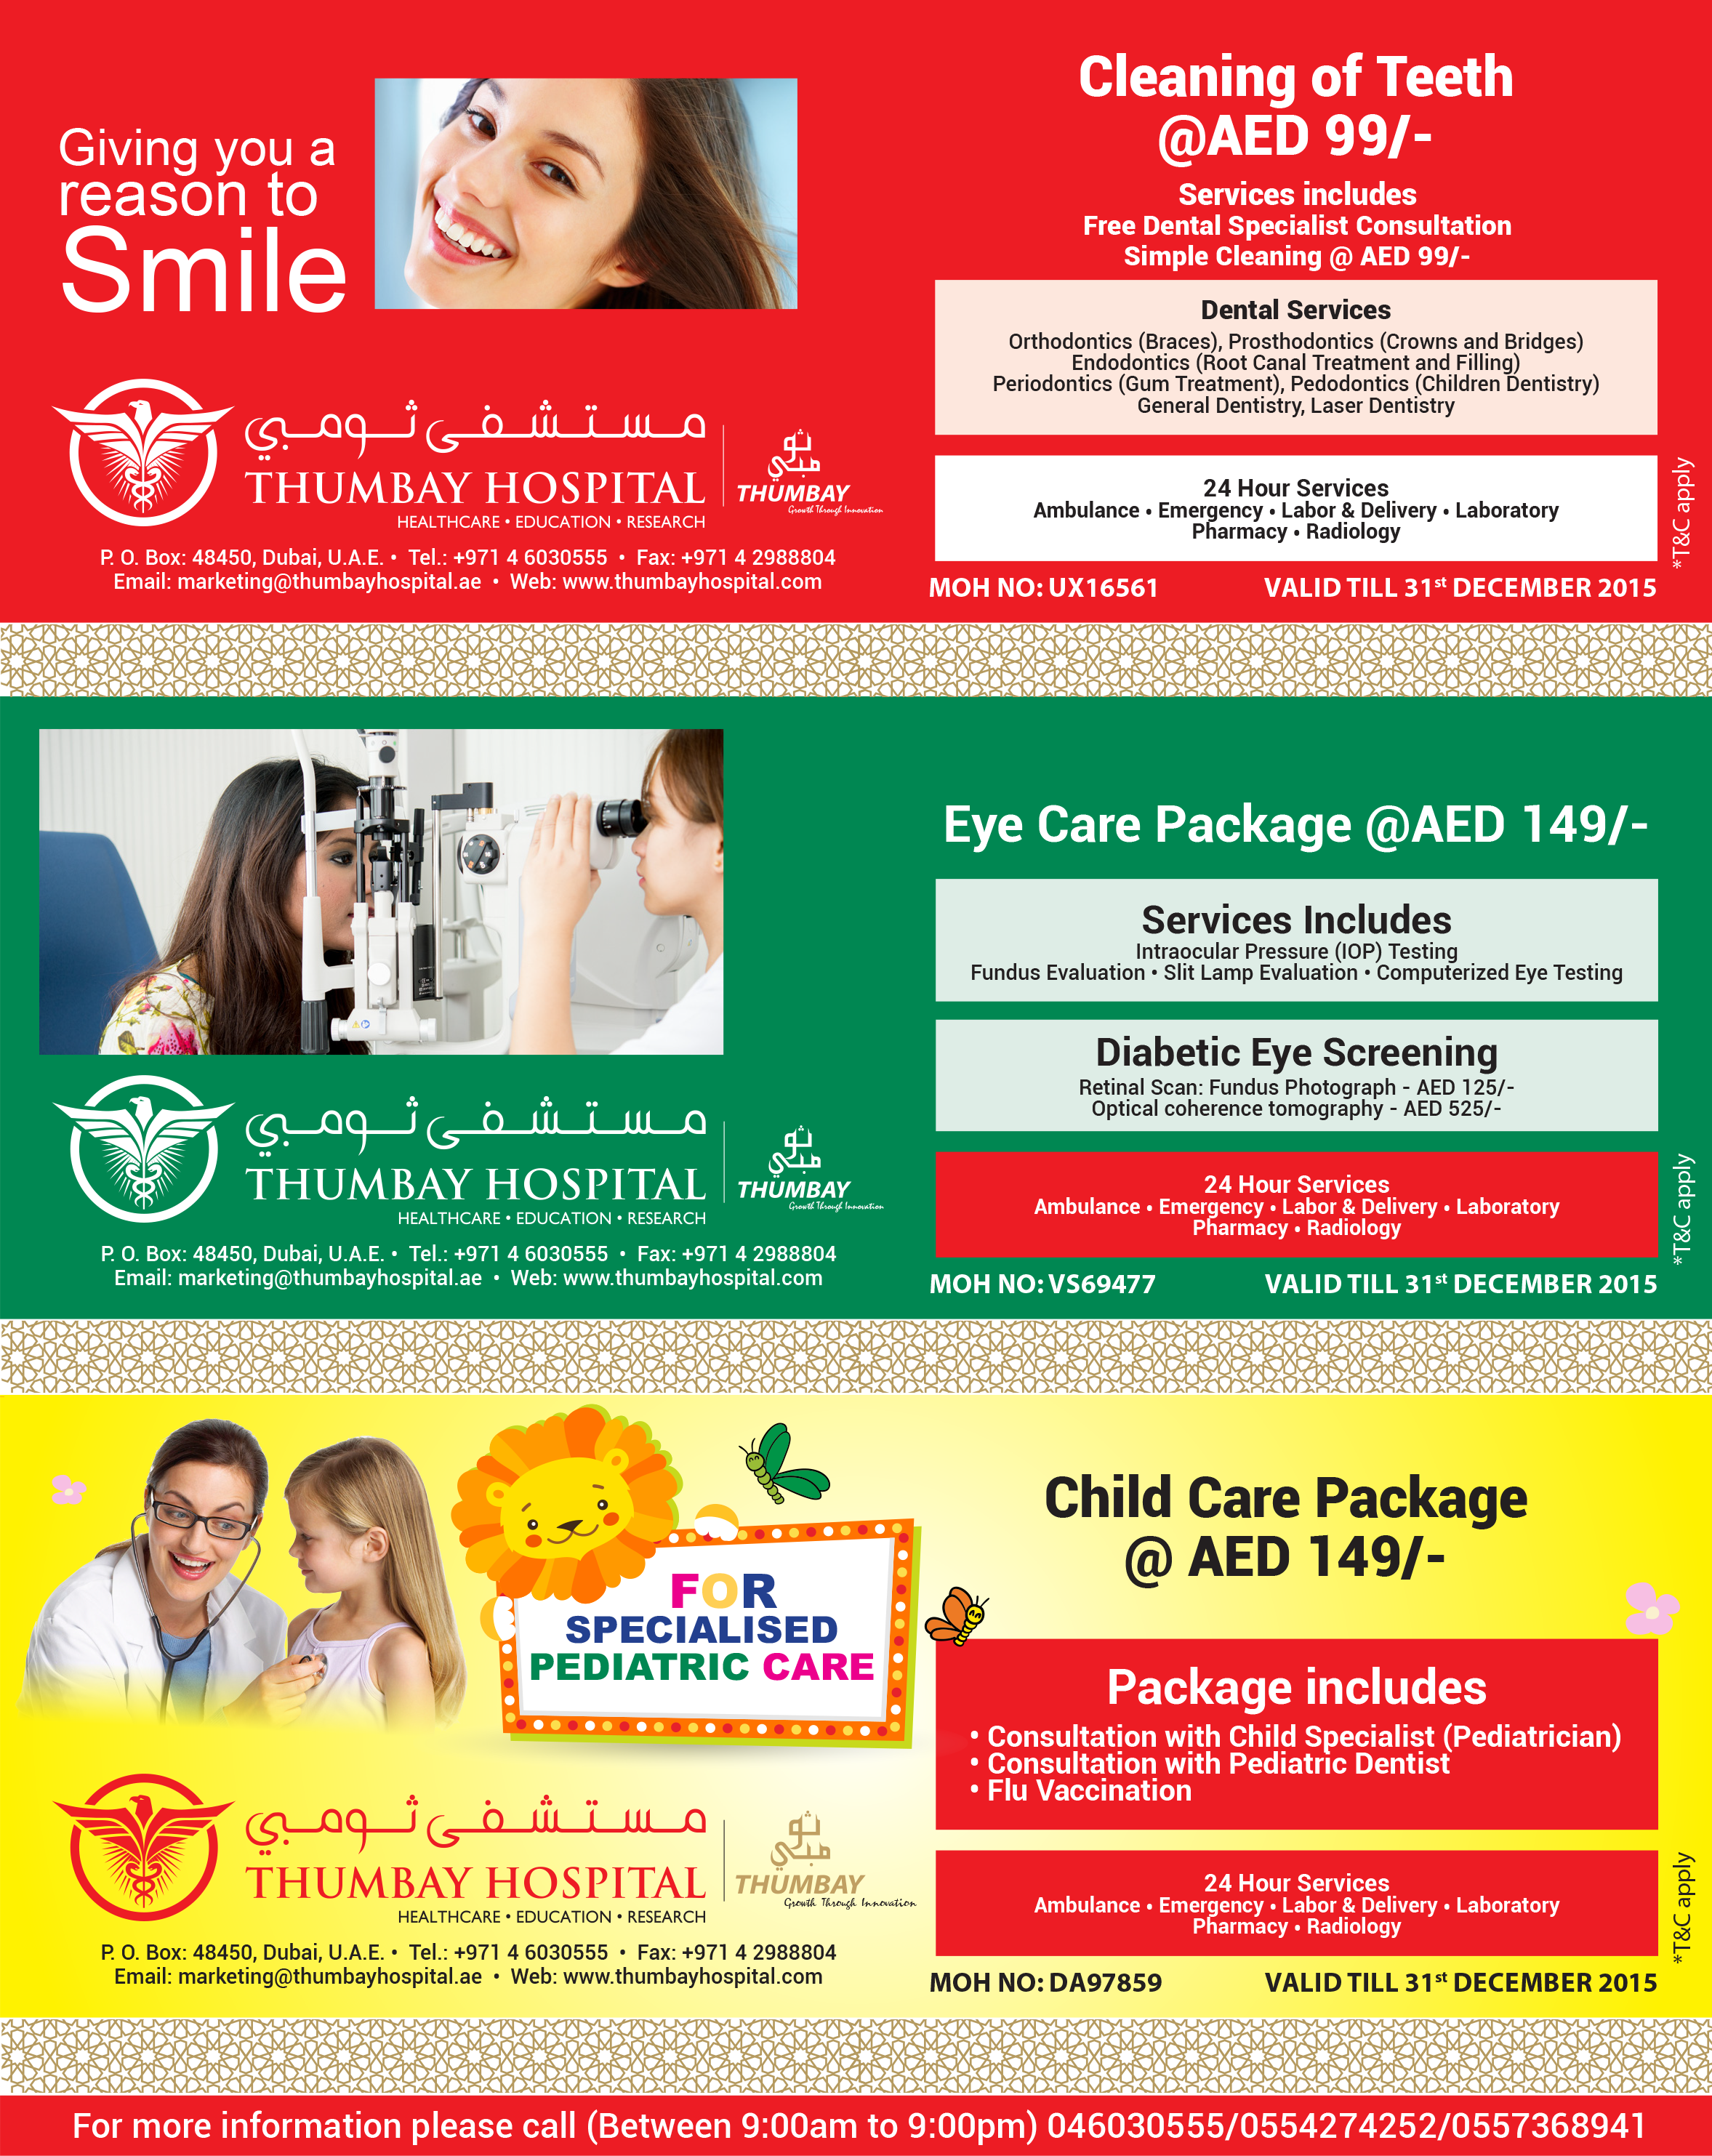 Health Packages Available At Thumbay Hospital Dubai Till 31st